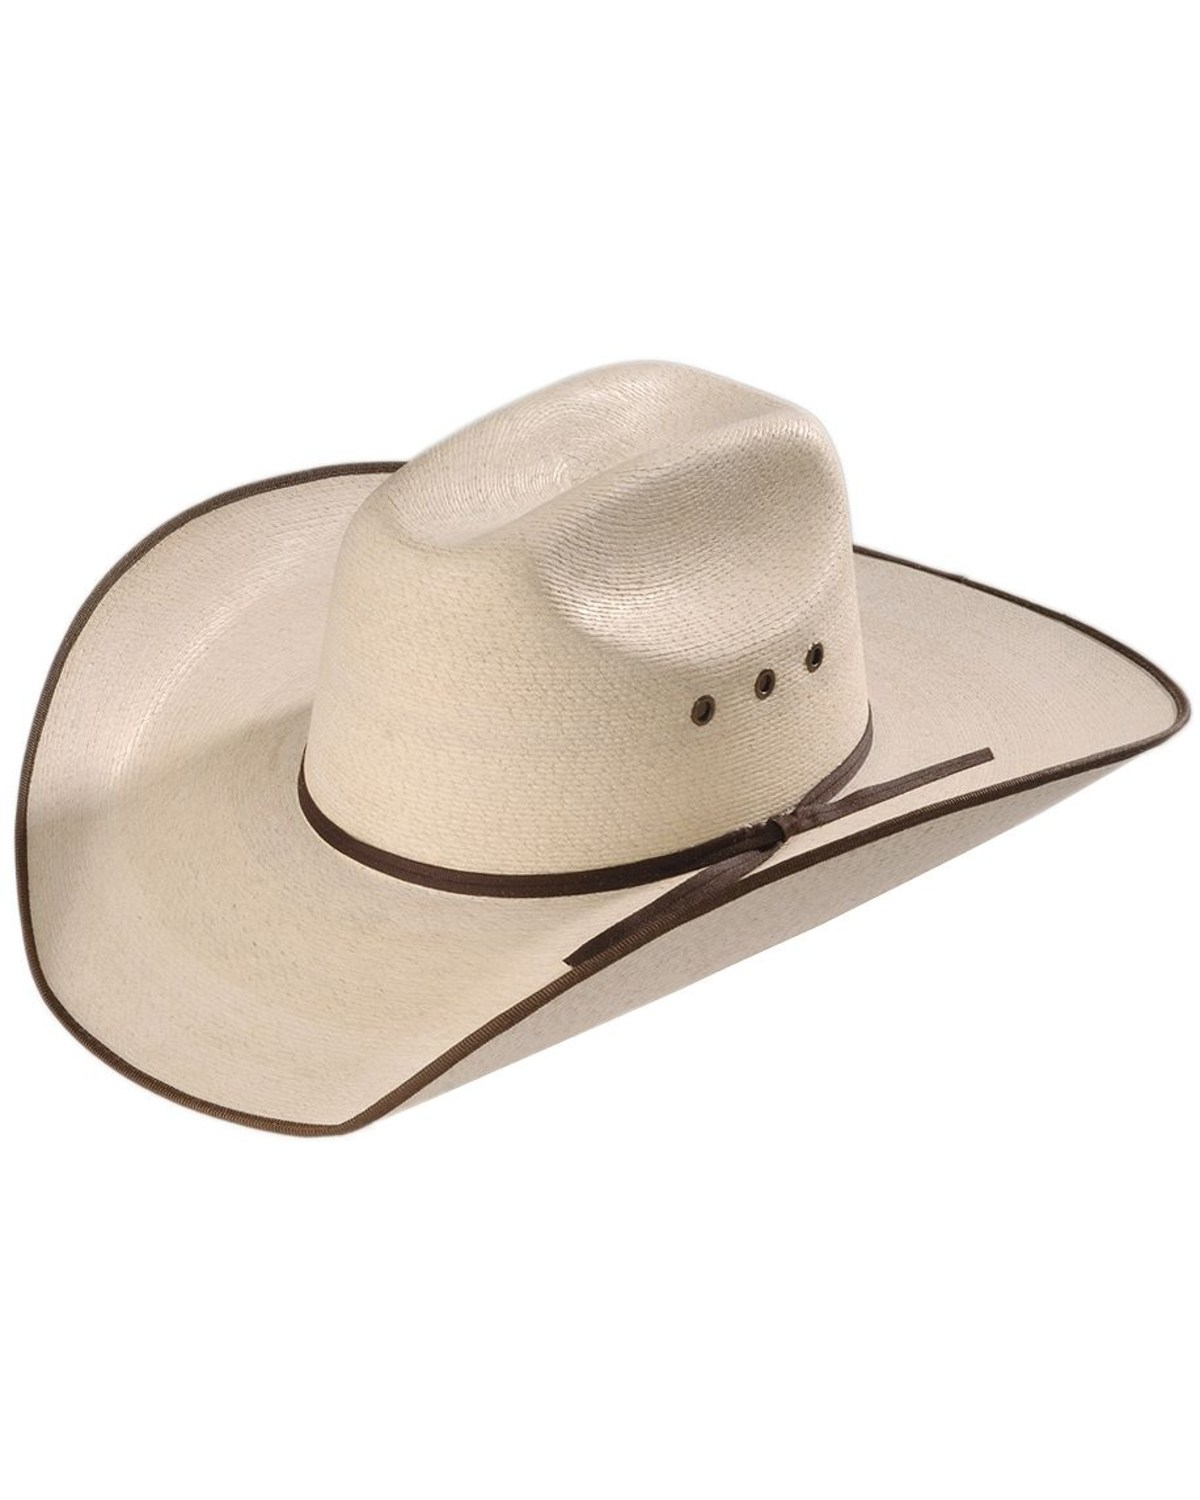 Atwood 5X Herford Palm Cowboy Hat  904fc98d198a